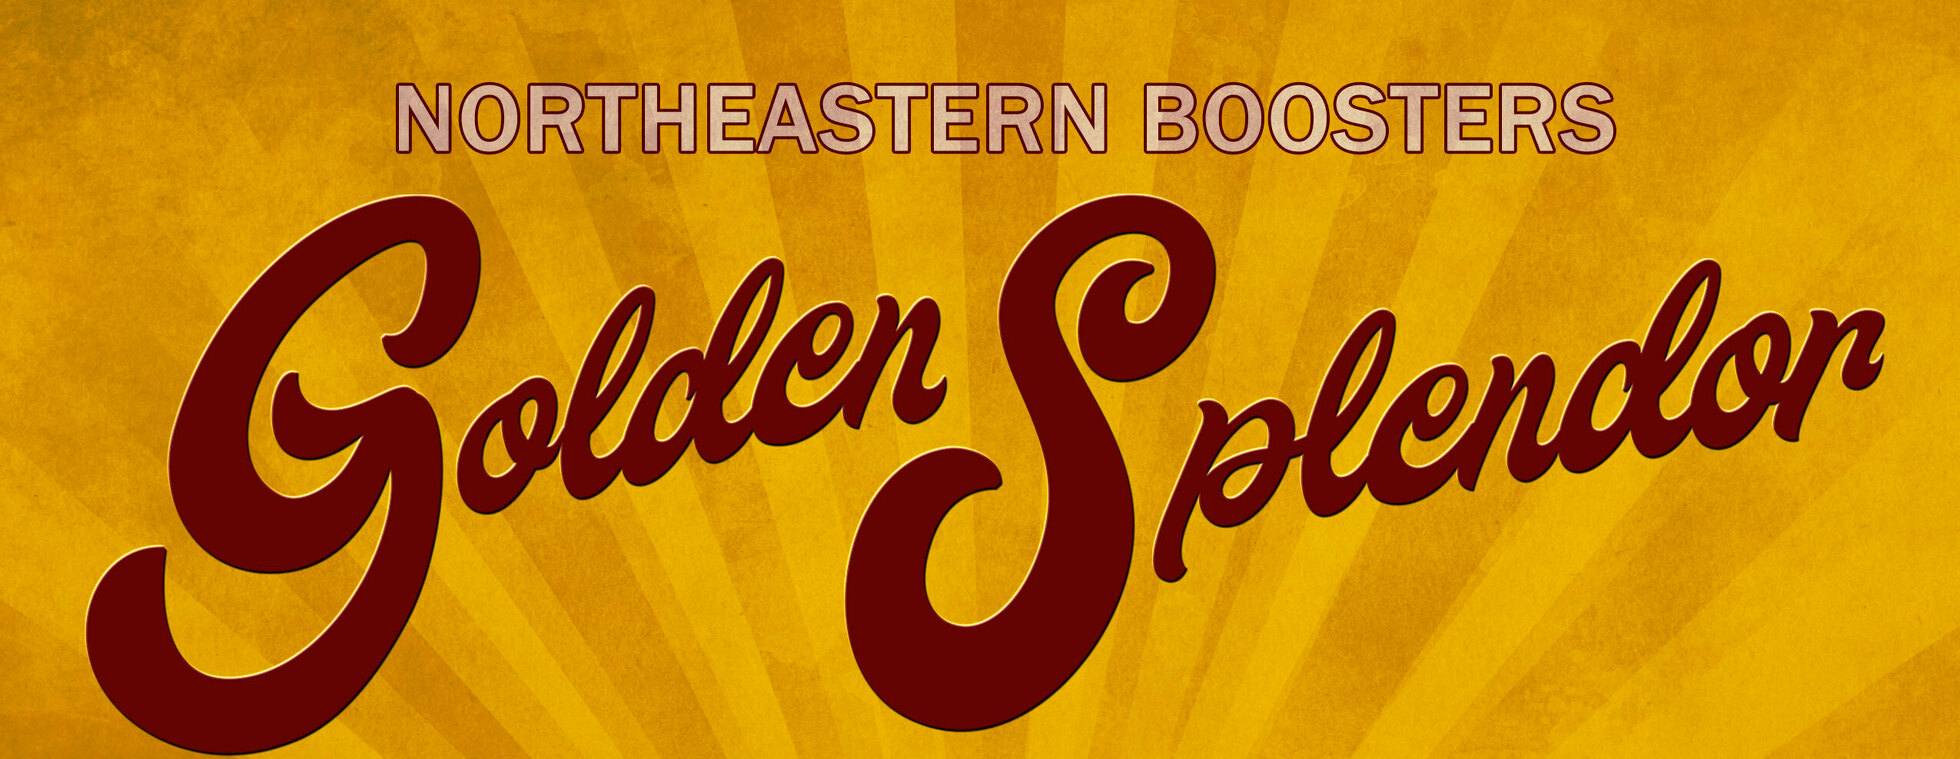 Northeastern Booster Club- Golden Splendor